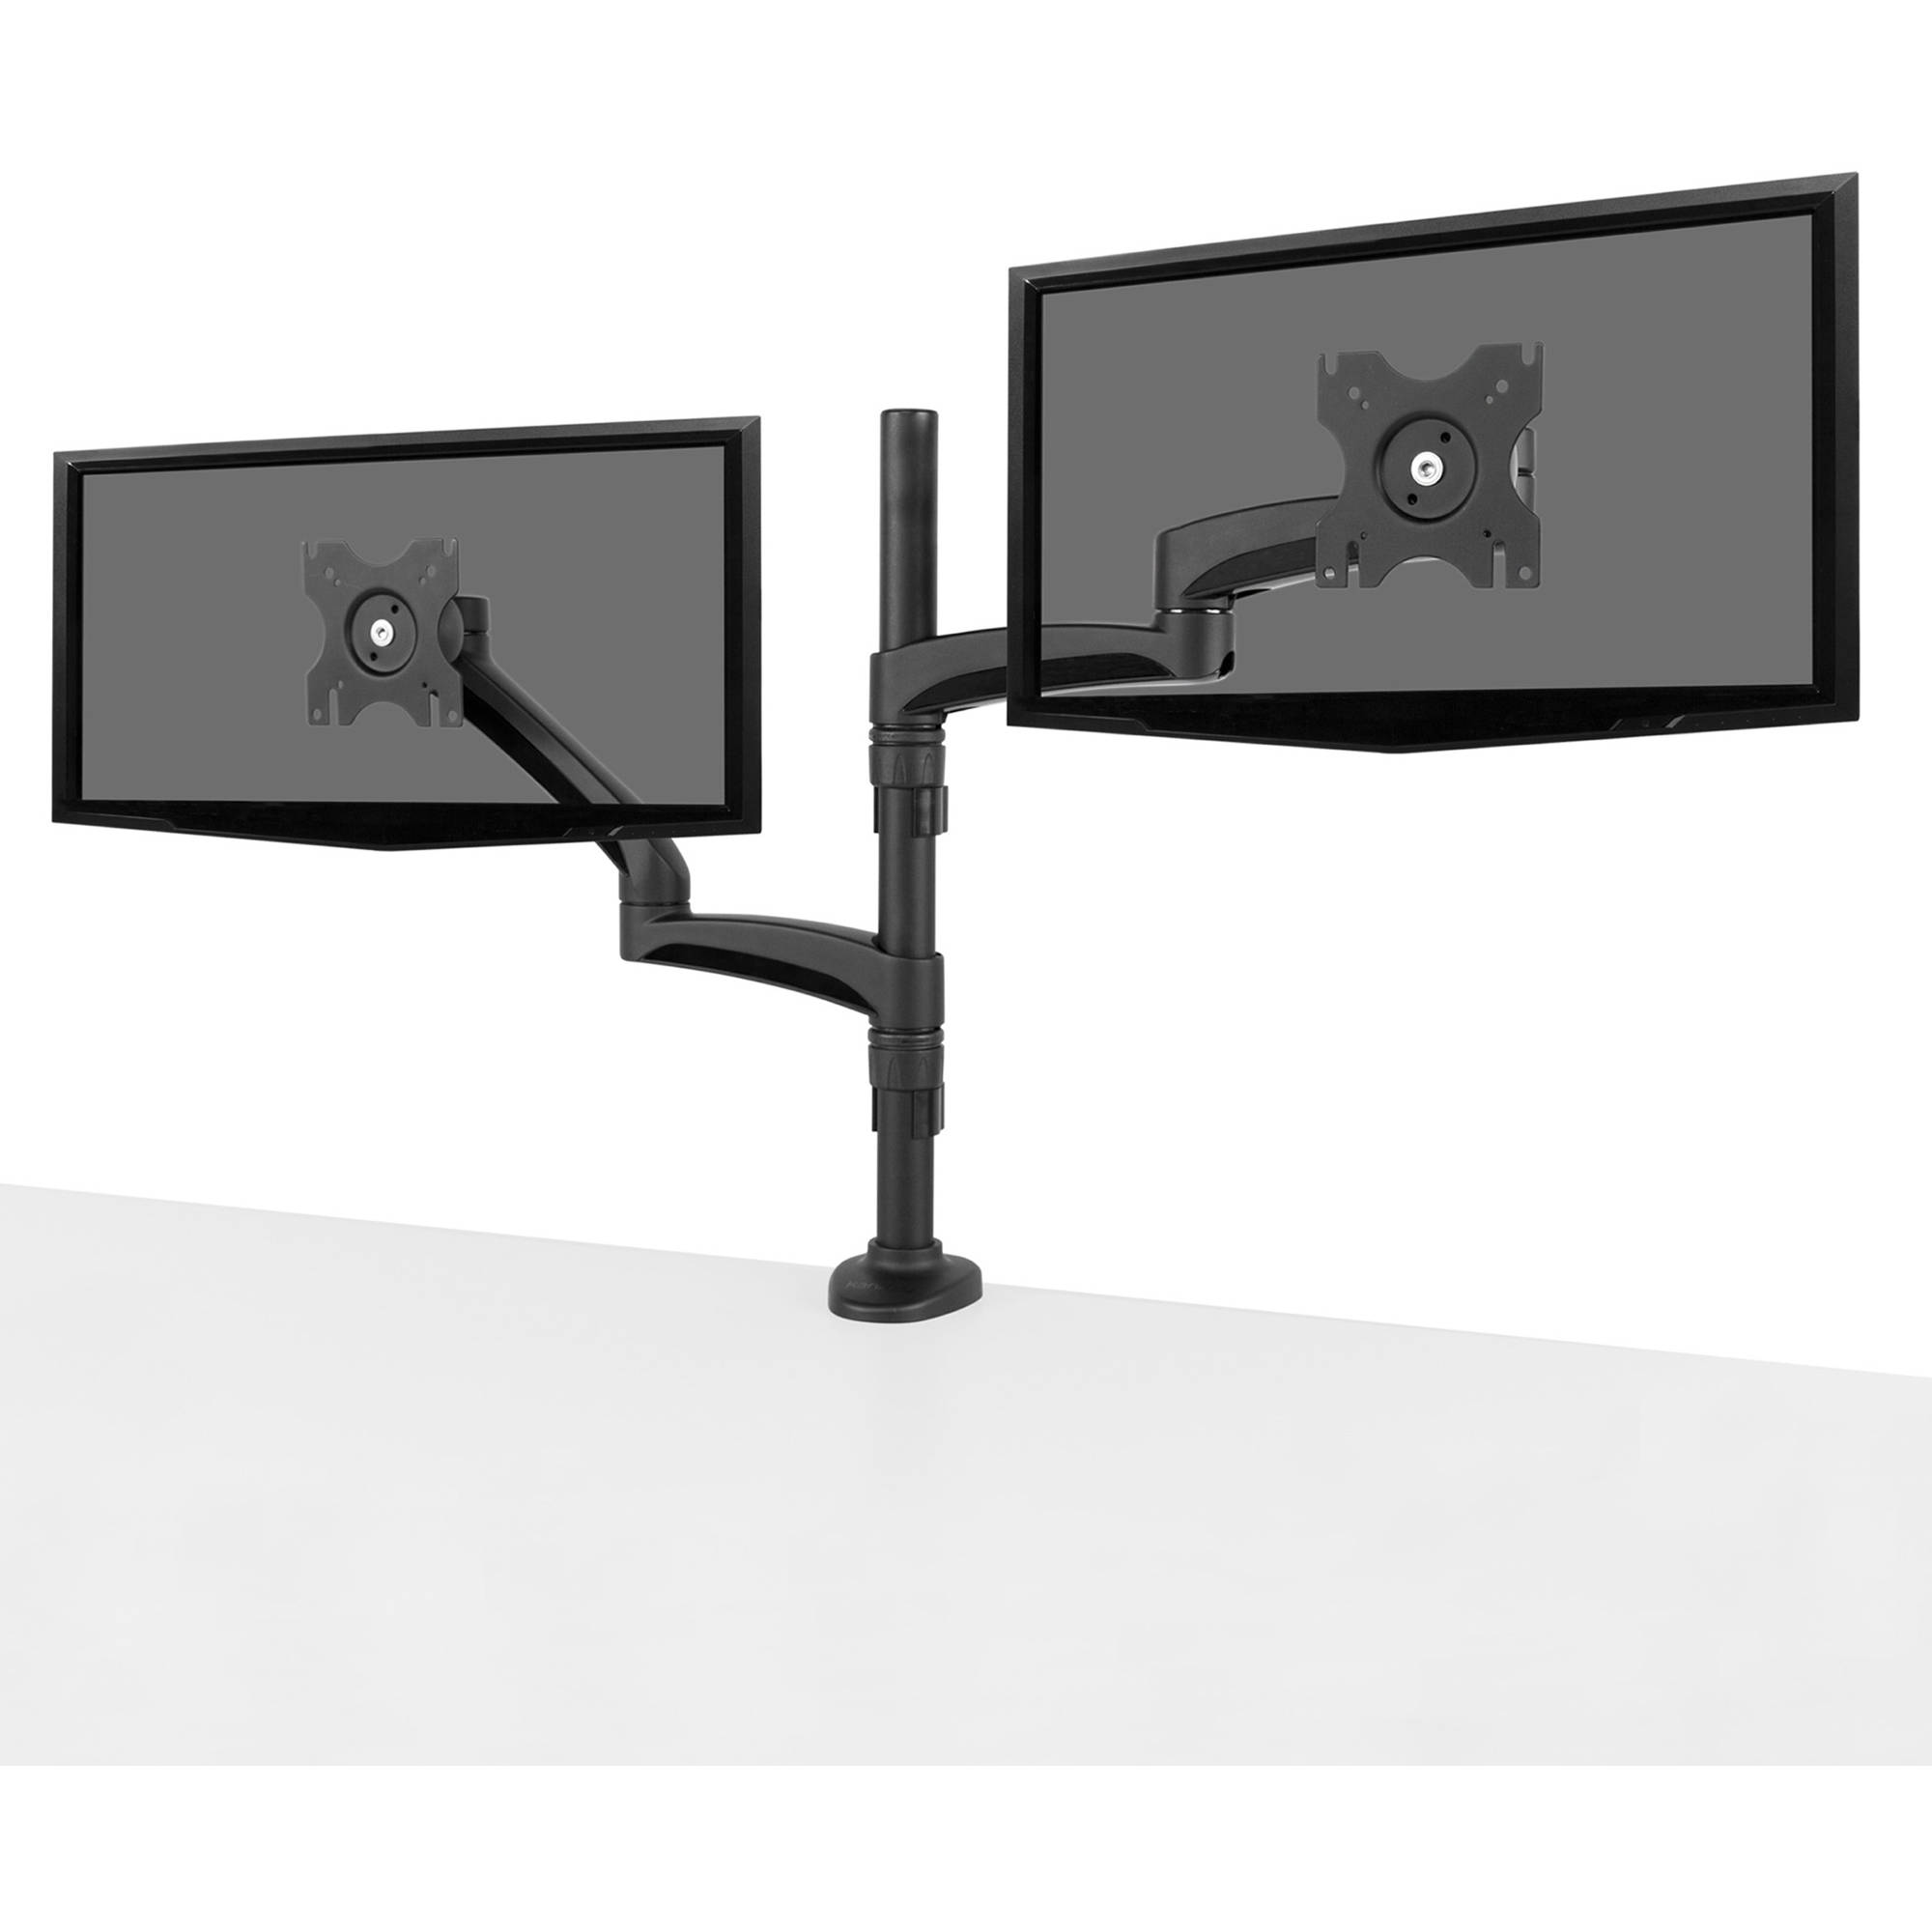 Kanto Living DM2000 Desktop Dual Monitor Mount